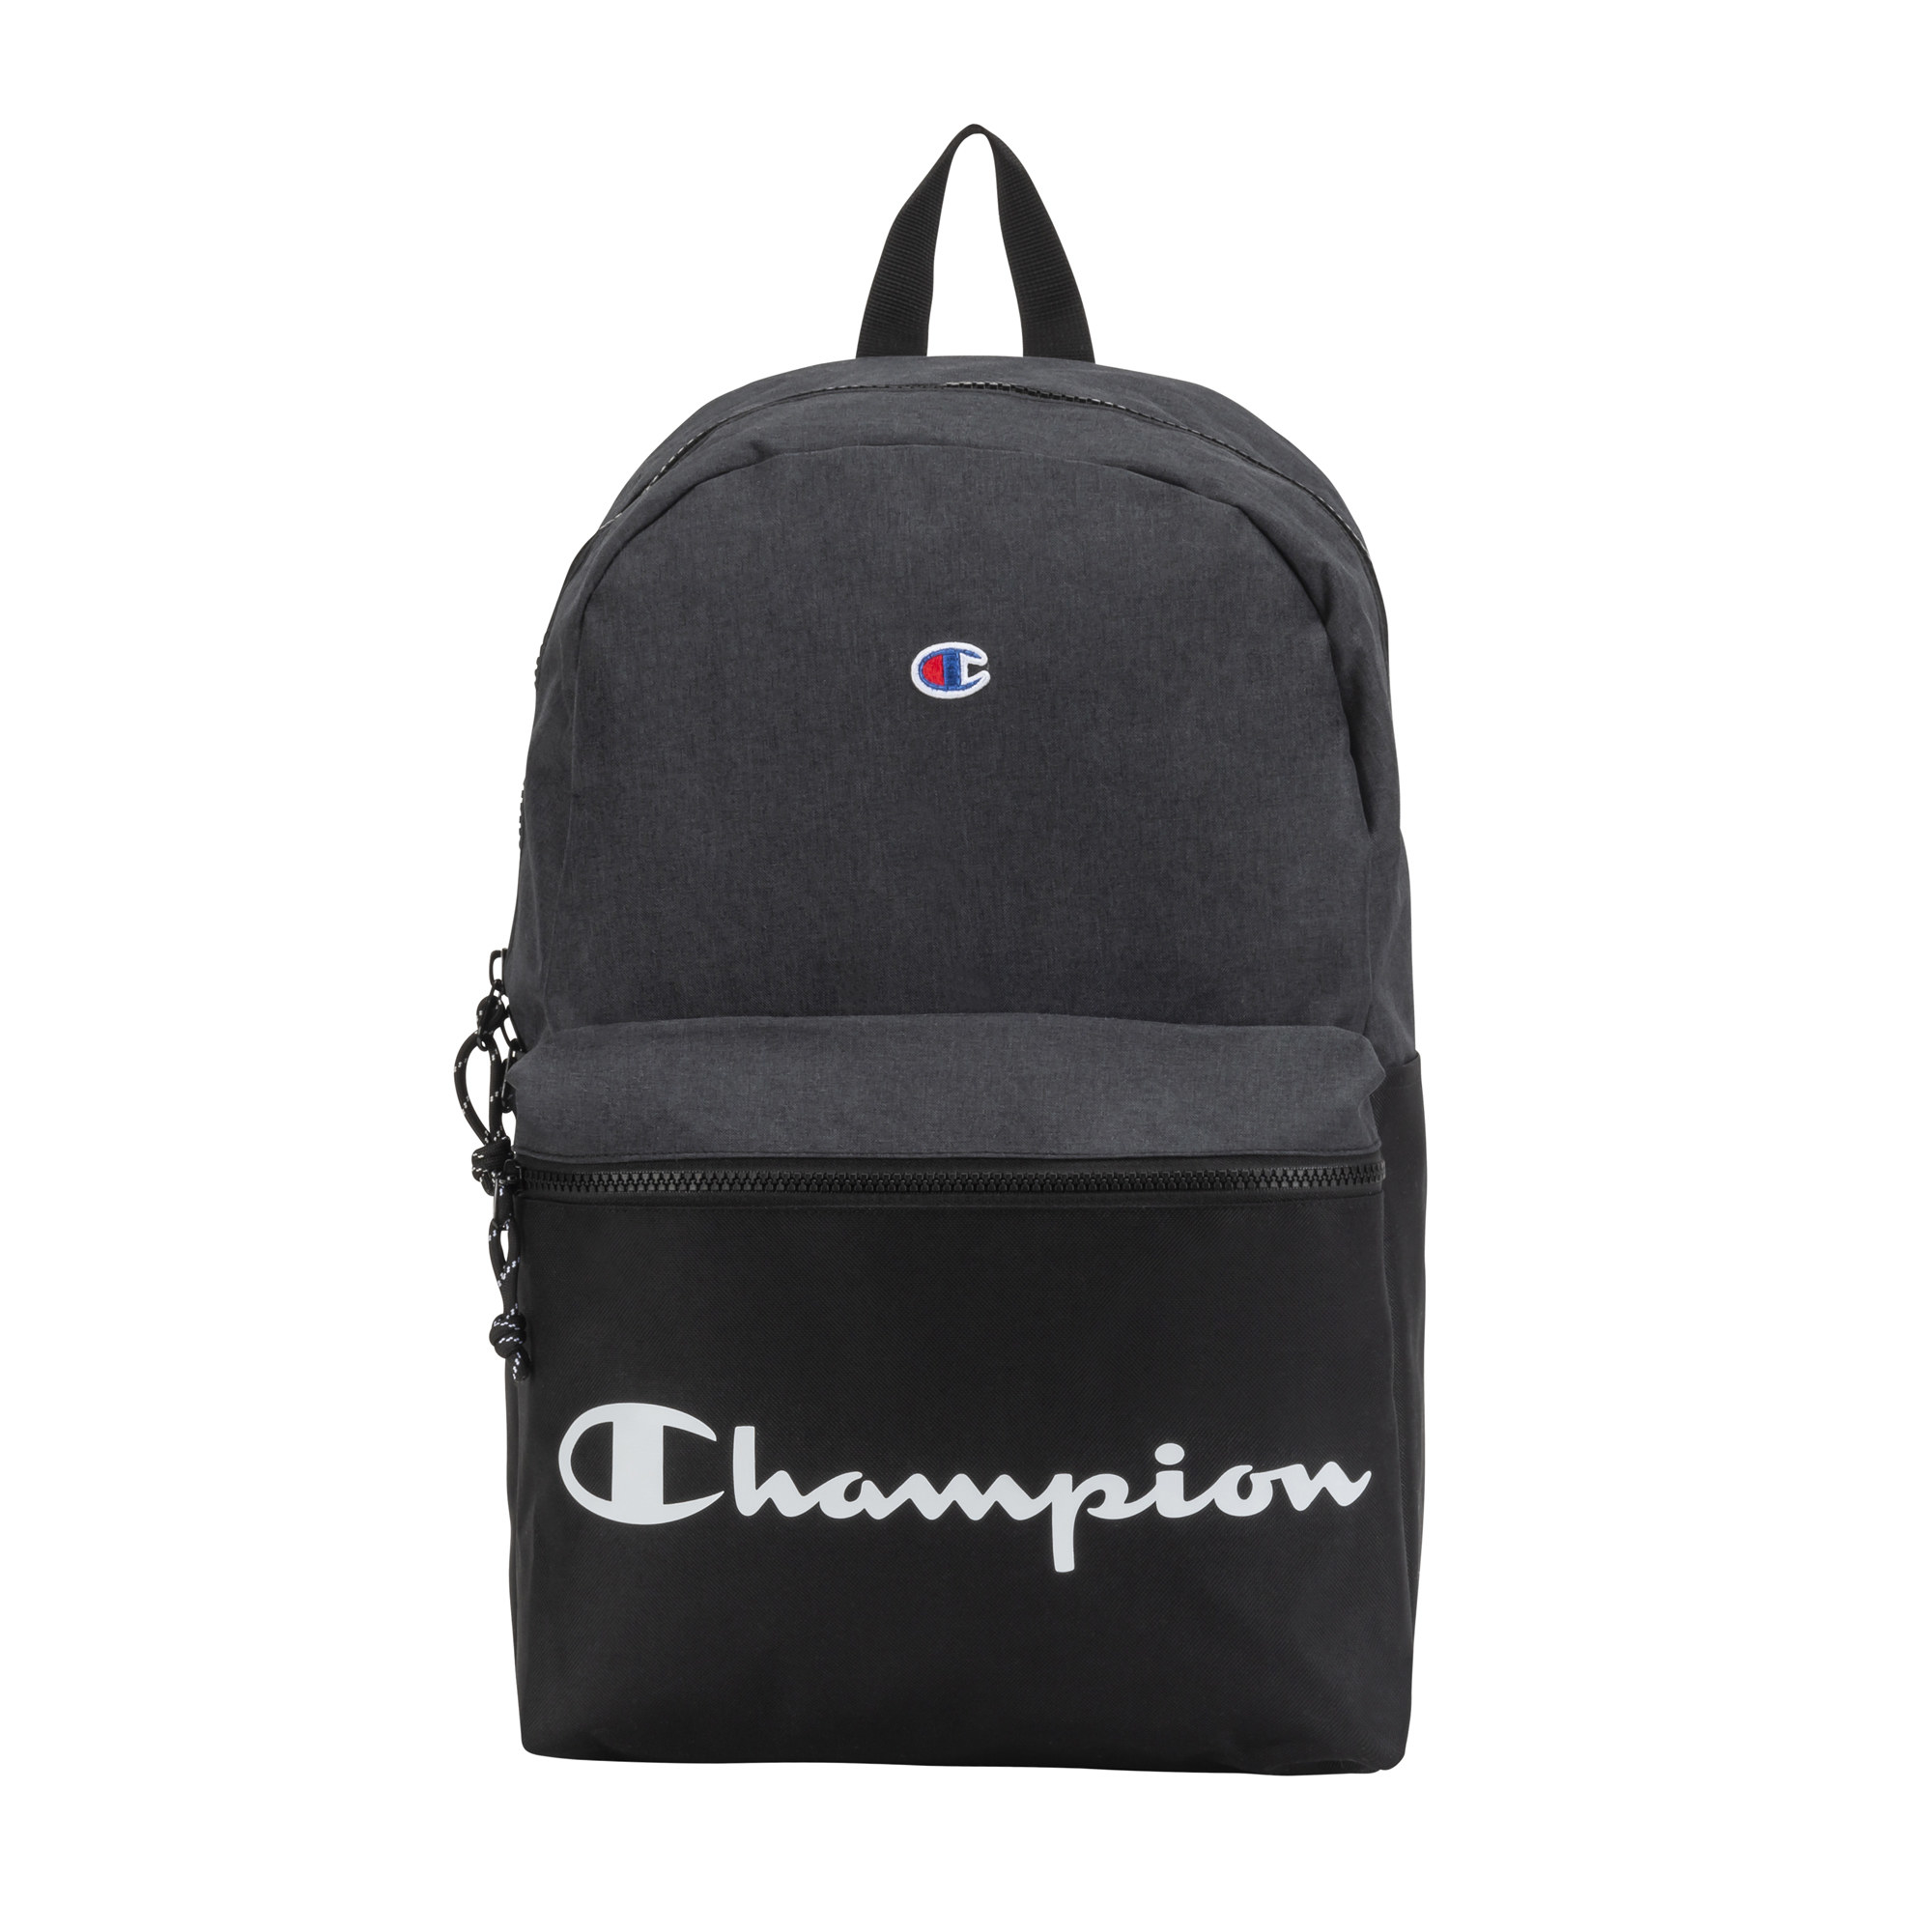 A black Champion backpack